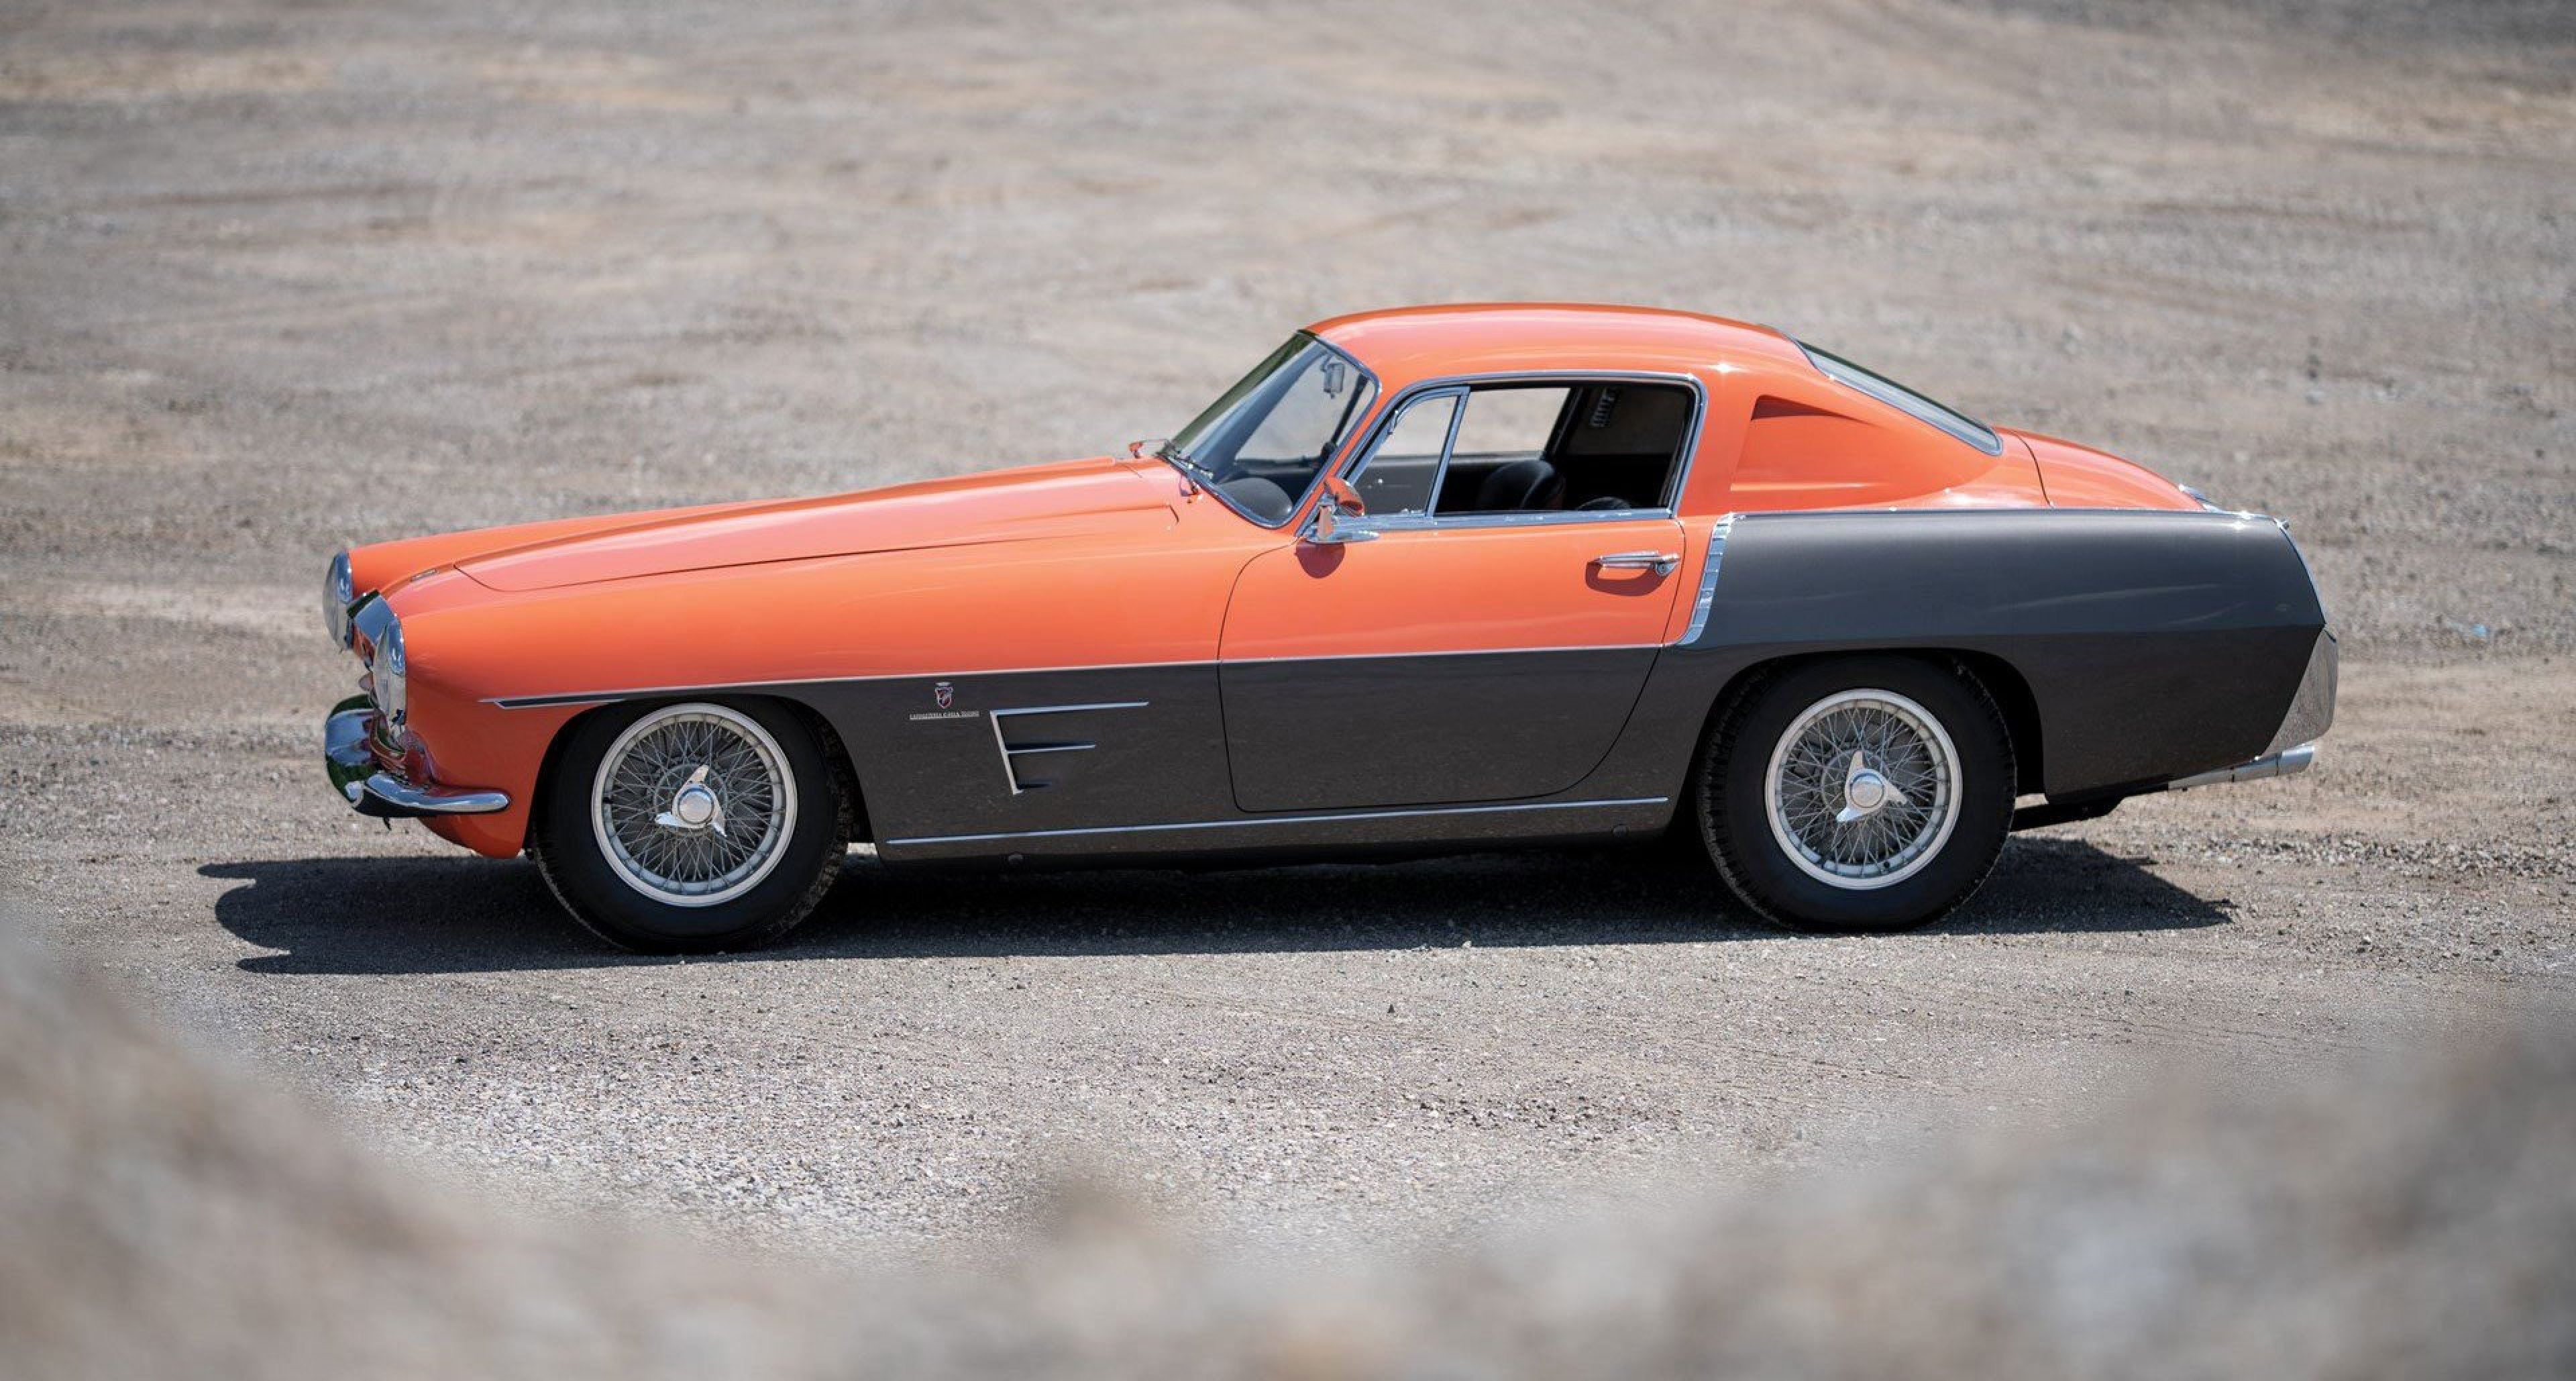 686a299bb7c16 Classic Driver | The classic car & lifestyle market and magazine